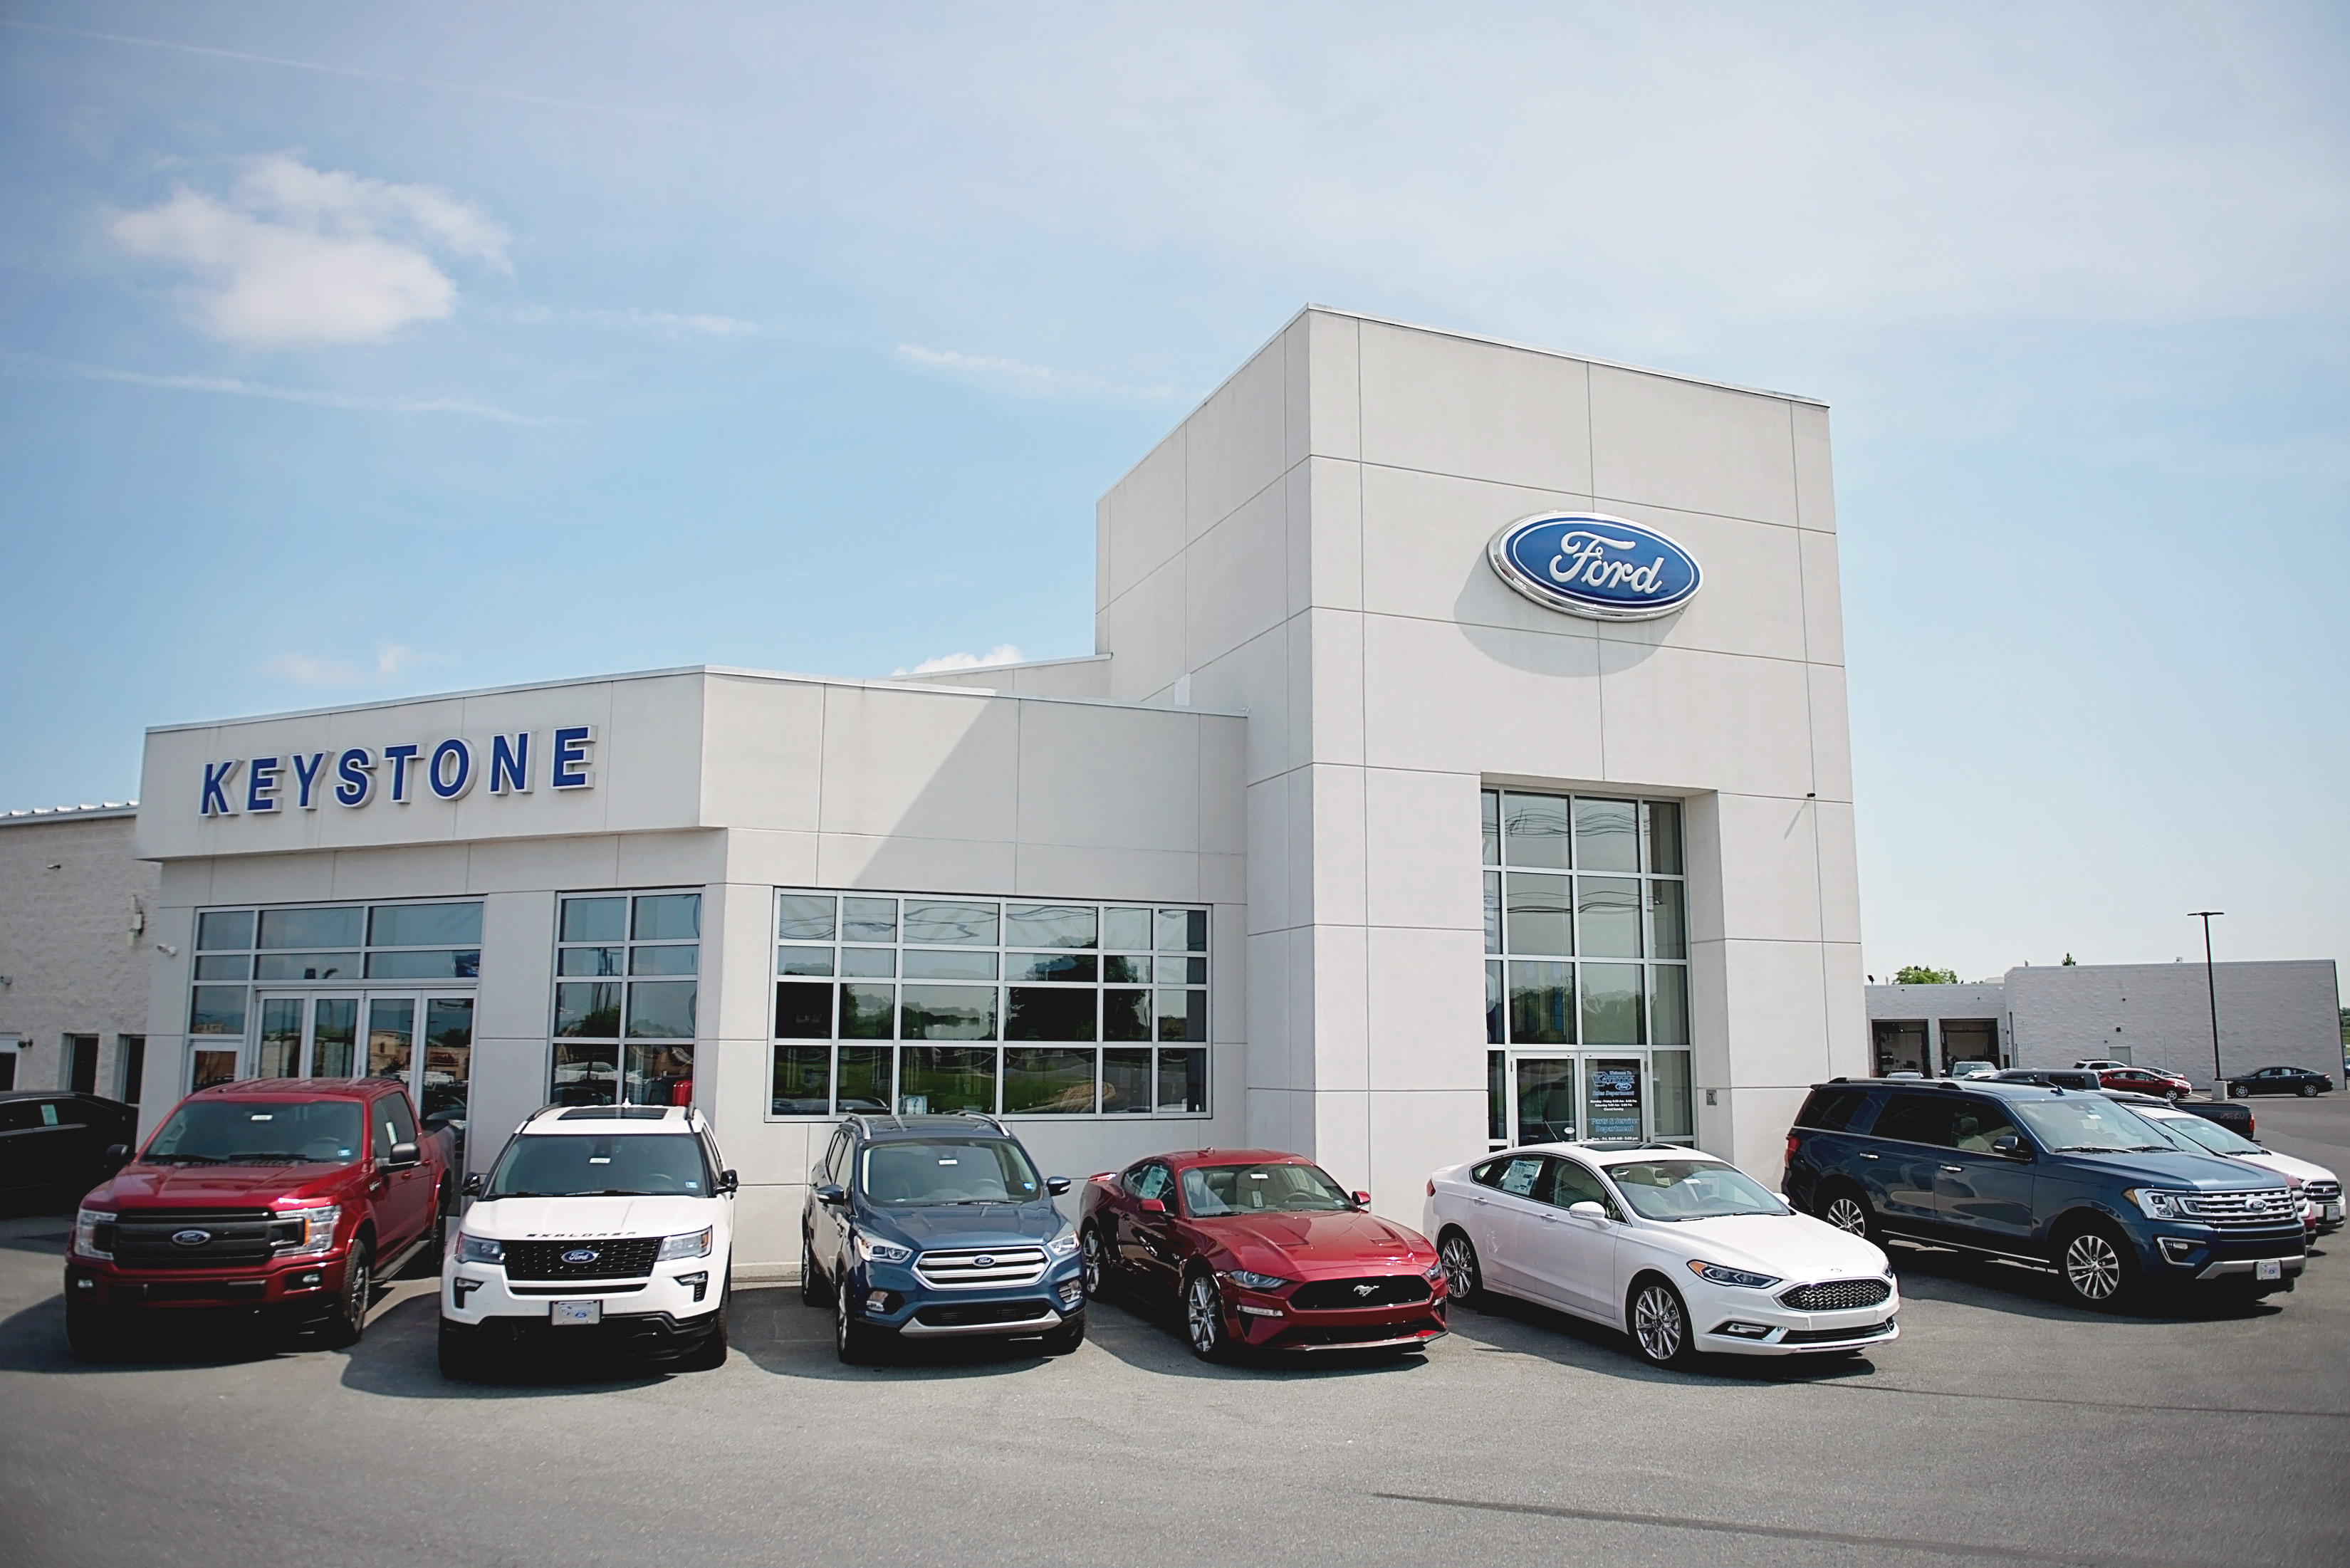 Keystone Ford Dealership